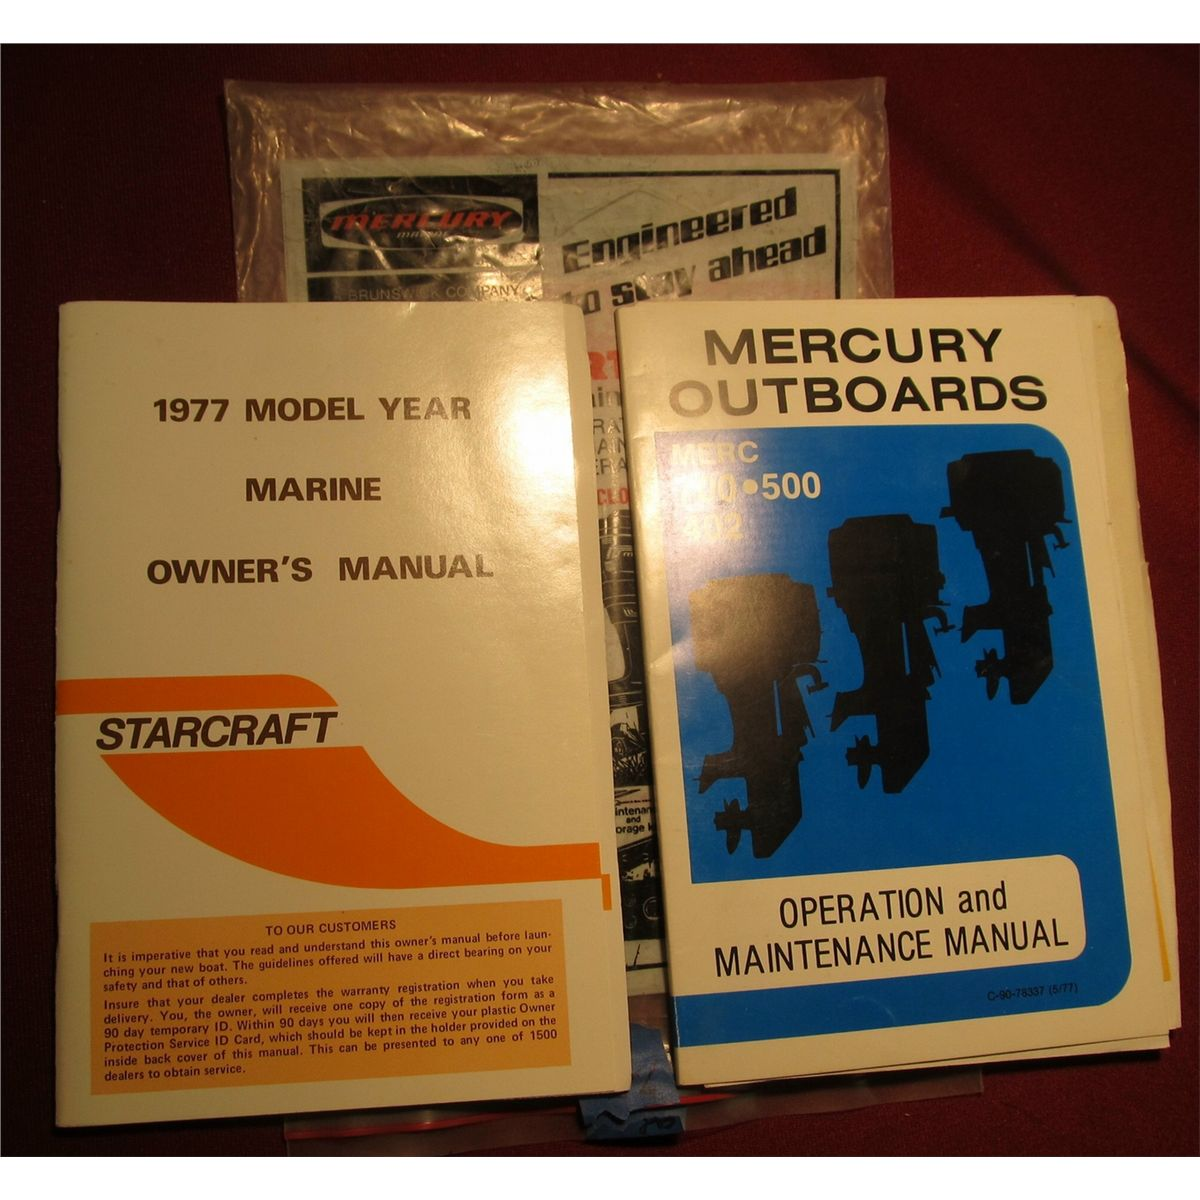 """1977 Model Year Marine Owner's Manual Starcraft"" & ""Mercury Outboards Merc  700 * 500 * 402 Oper"